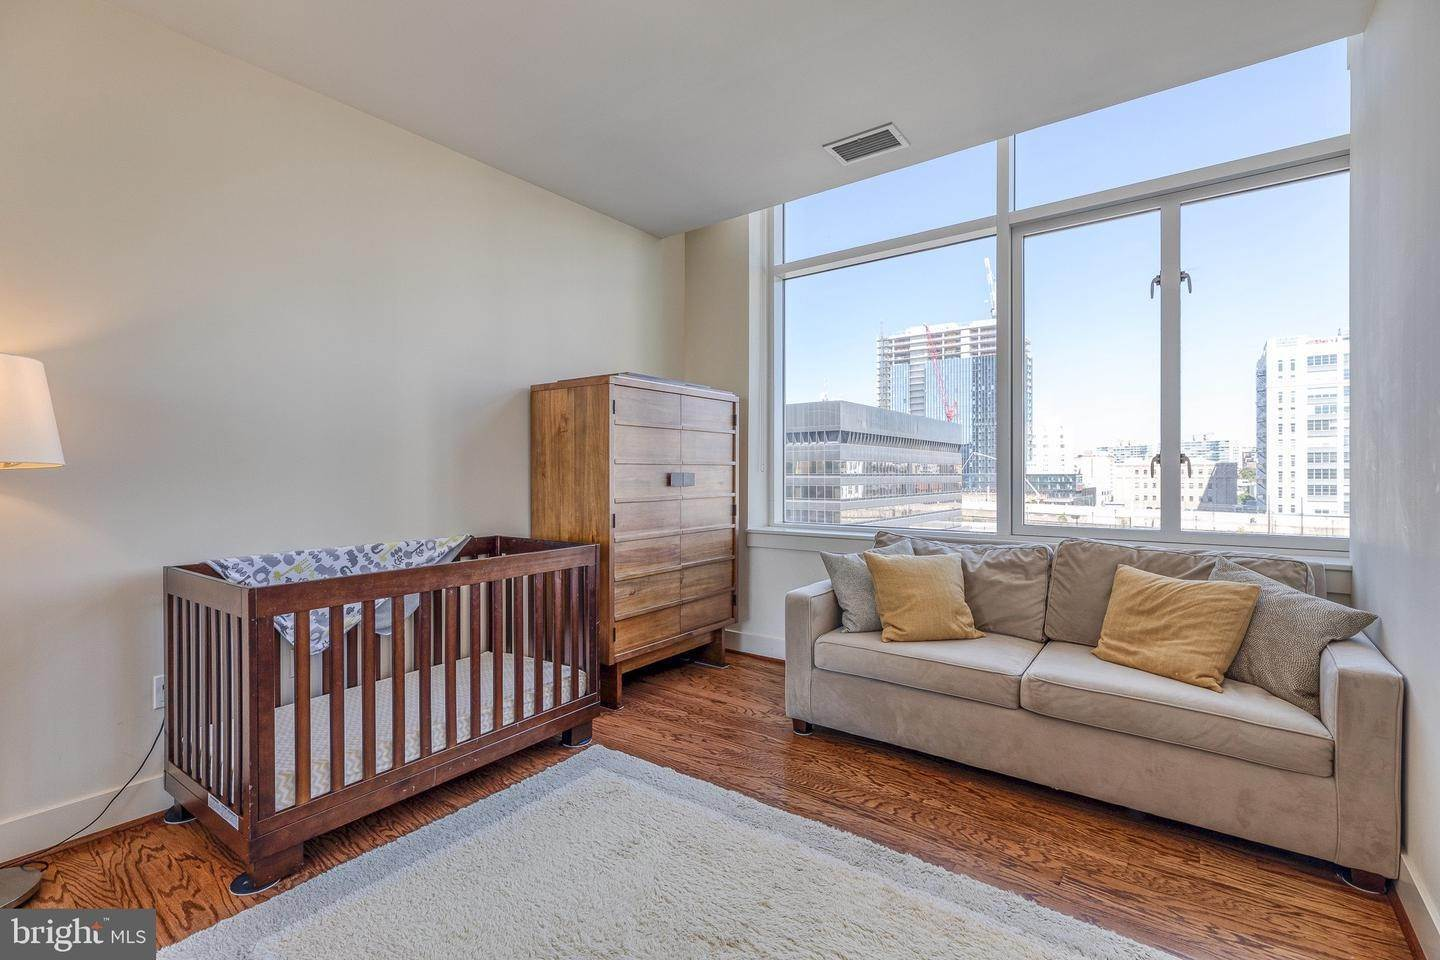 18. Apartments for Sale at 23 S 23RD ST #5B Philadelphia, Pennsylvania 19103 United States